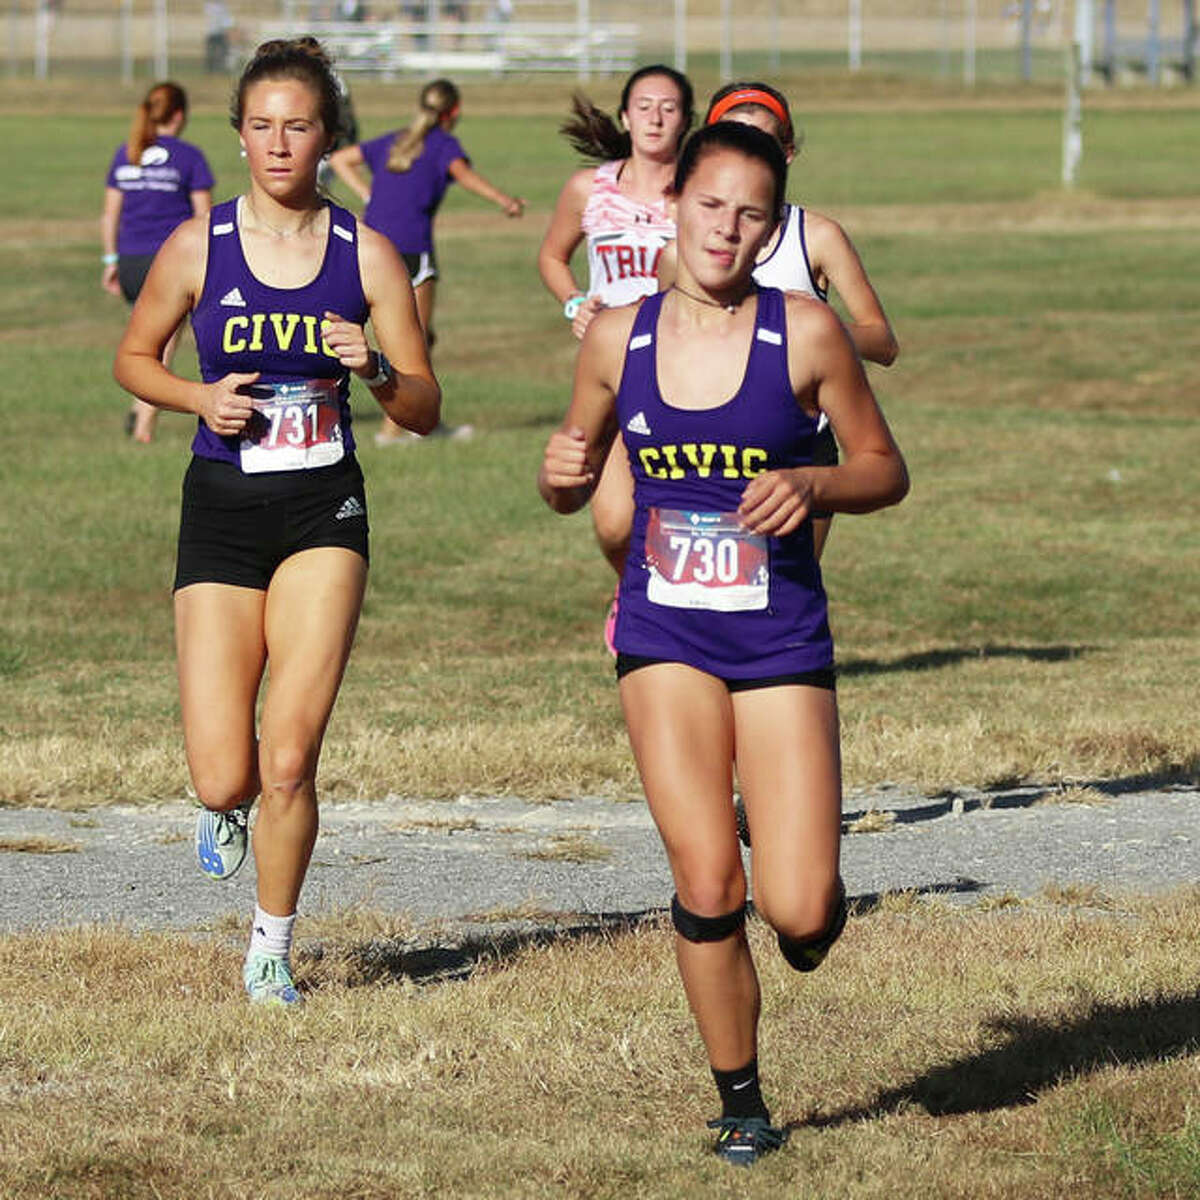 CM's Avari Combes (right) and Kate Hallstead (left) run during the MVC Meet on Oct. 13 in Mascoutah. Those two Eagles made their sectional debut Saturday at Olney.